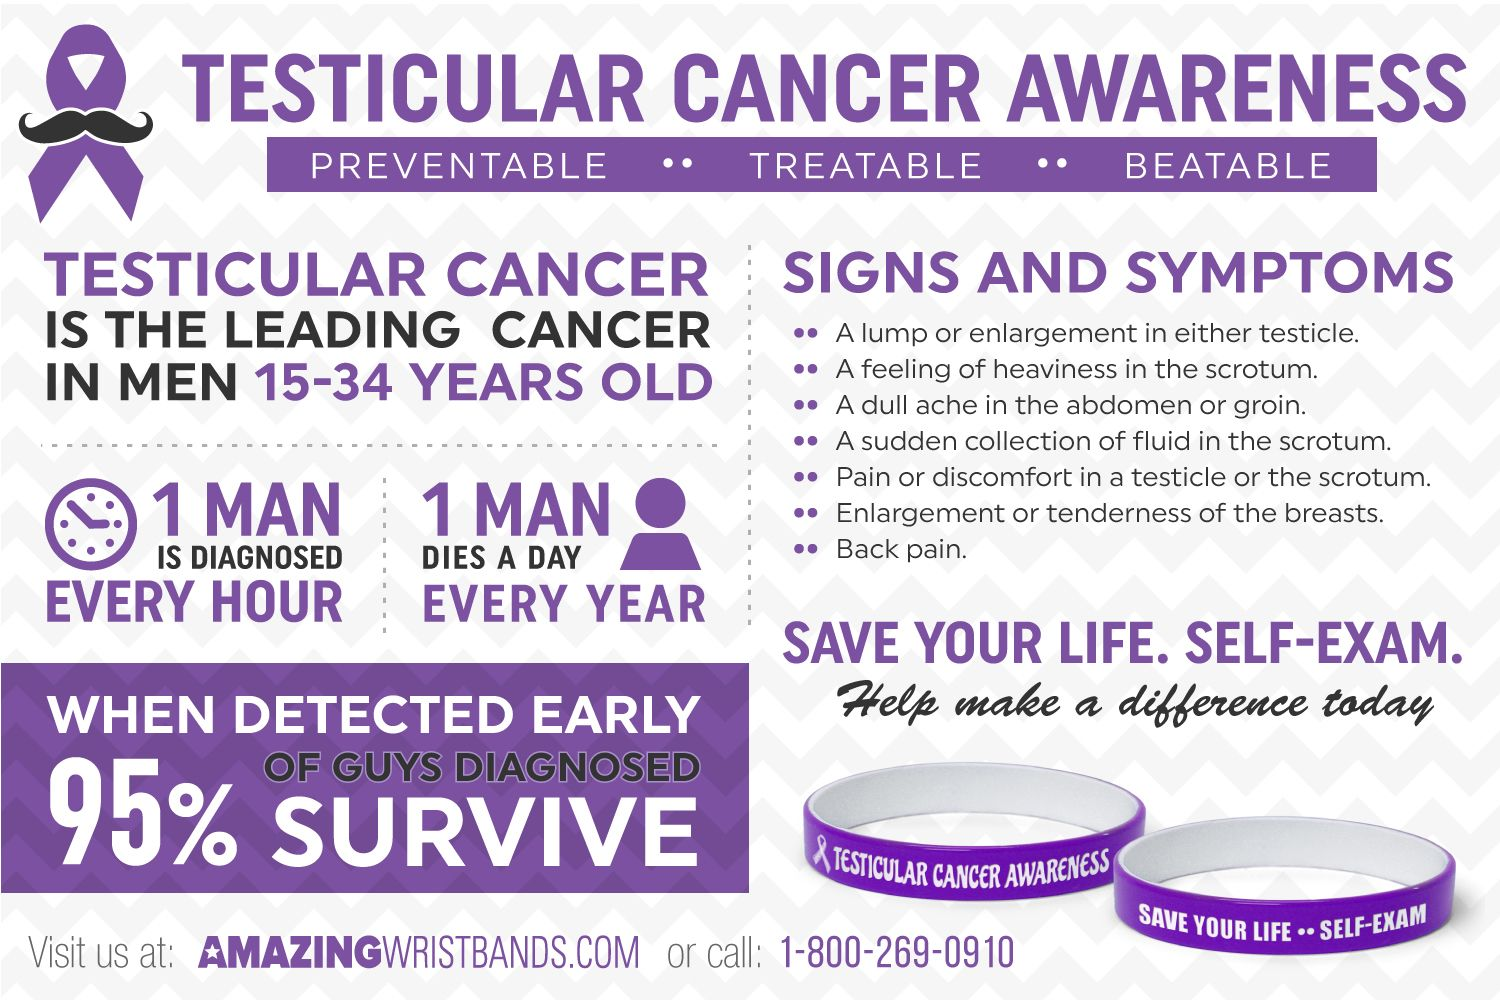 rockyourcausejewelry ribbon causejewelry images purple on cancer by disease hodgkins best pinterest hodgkin violet s bracelet lymphoma craniosynstosis jewelry adjustable and testicular awareness silver gifts survivor